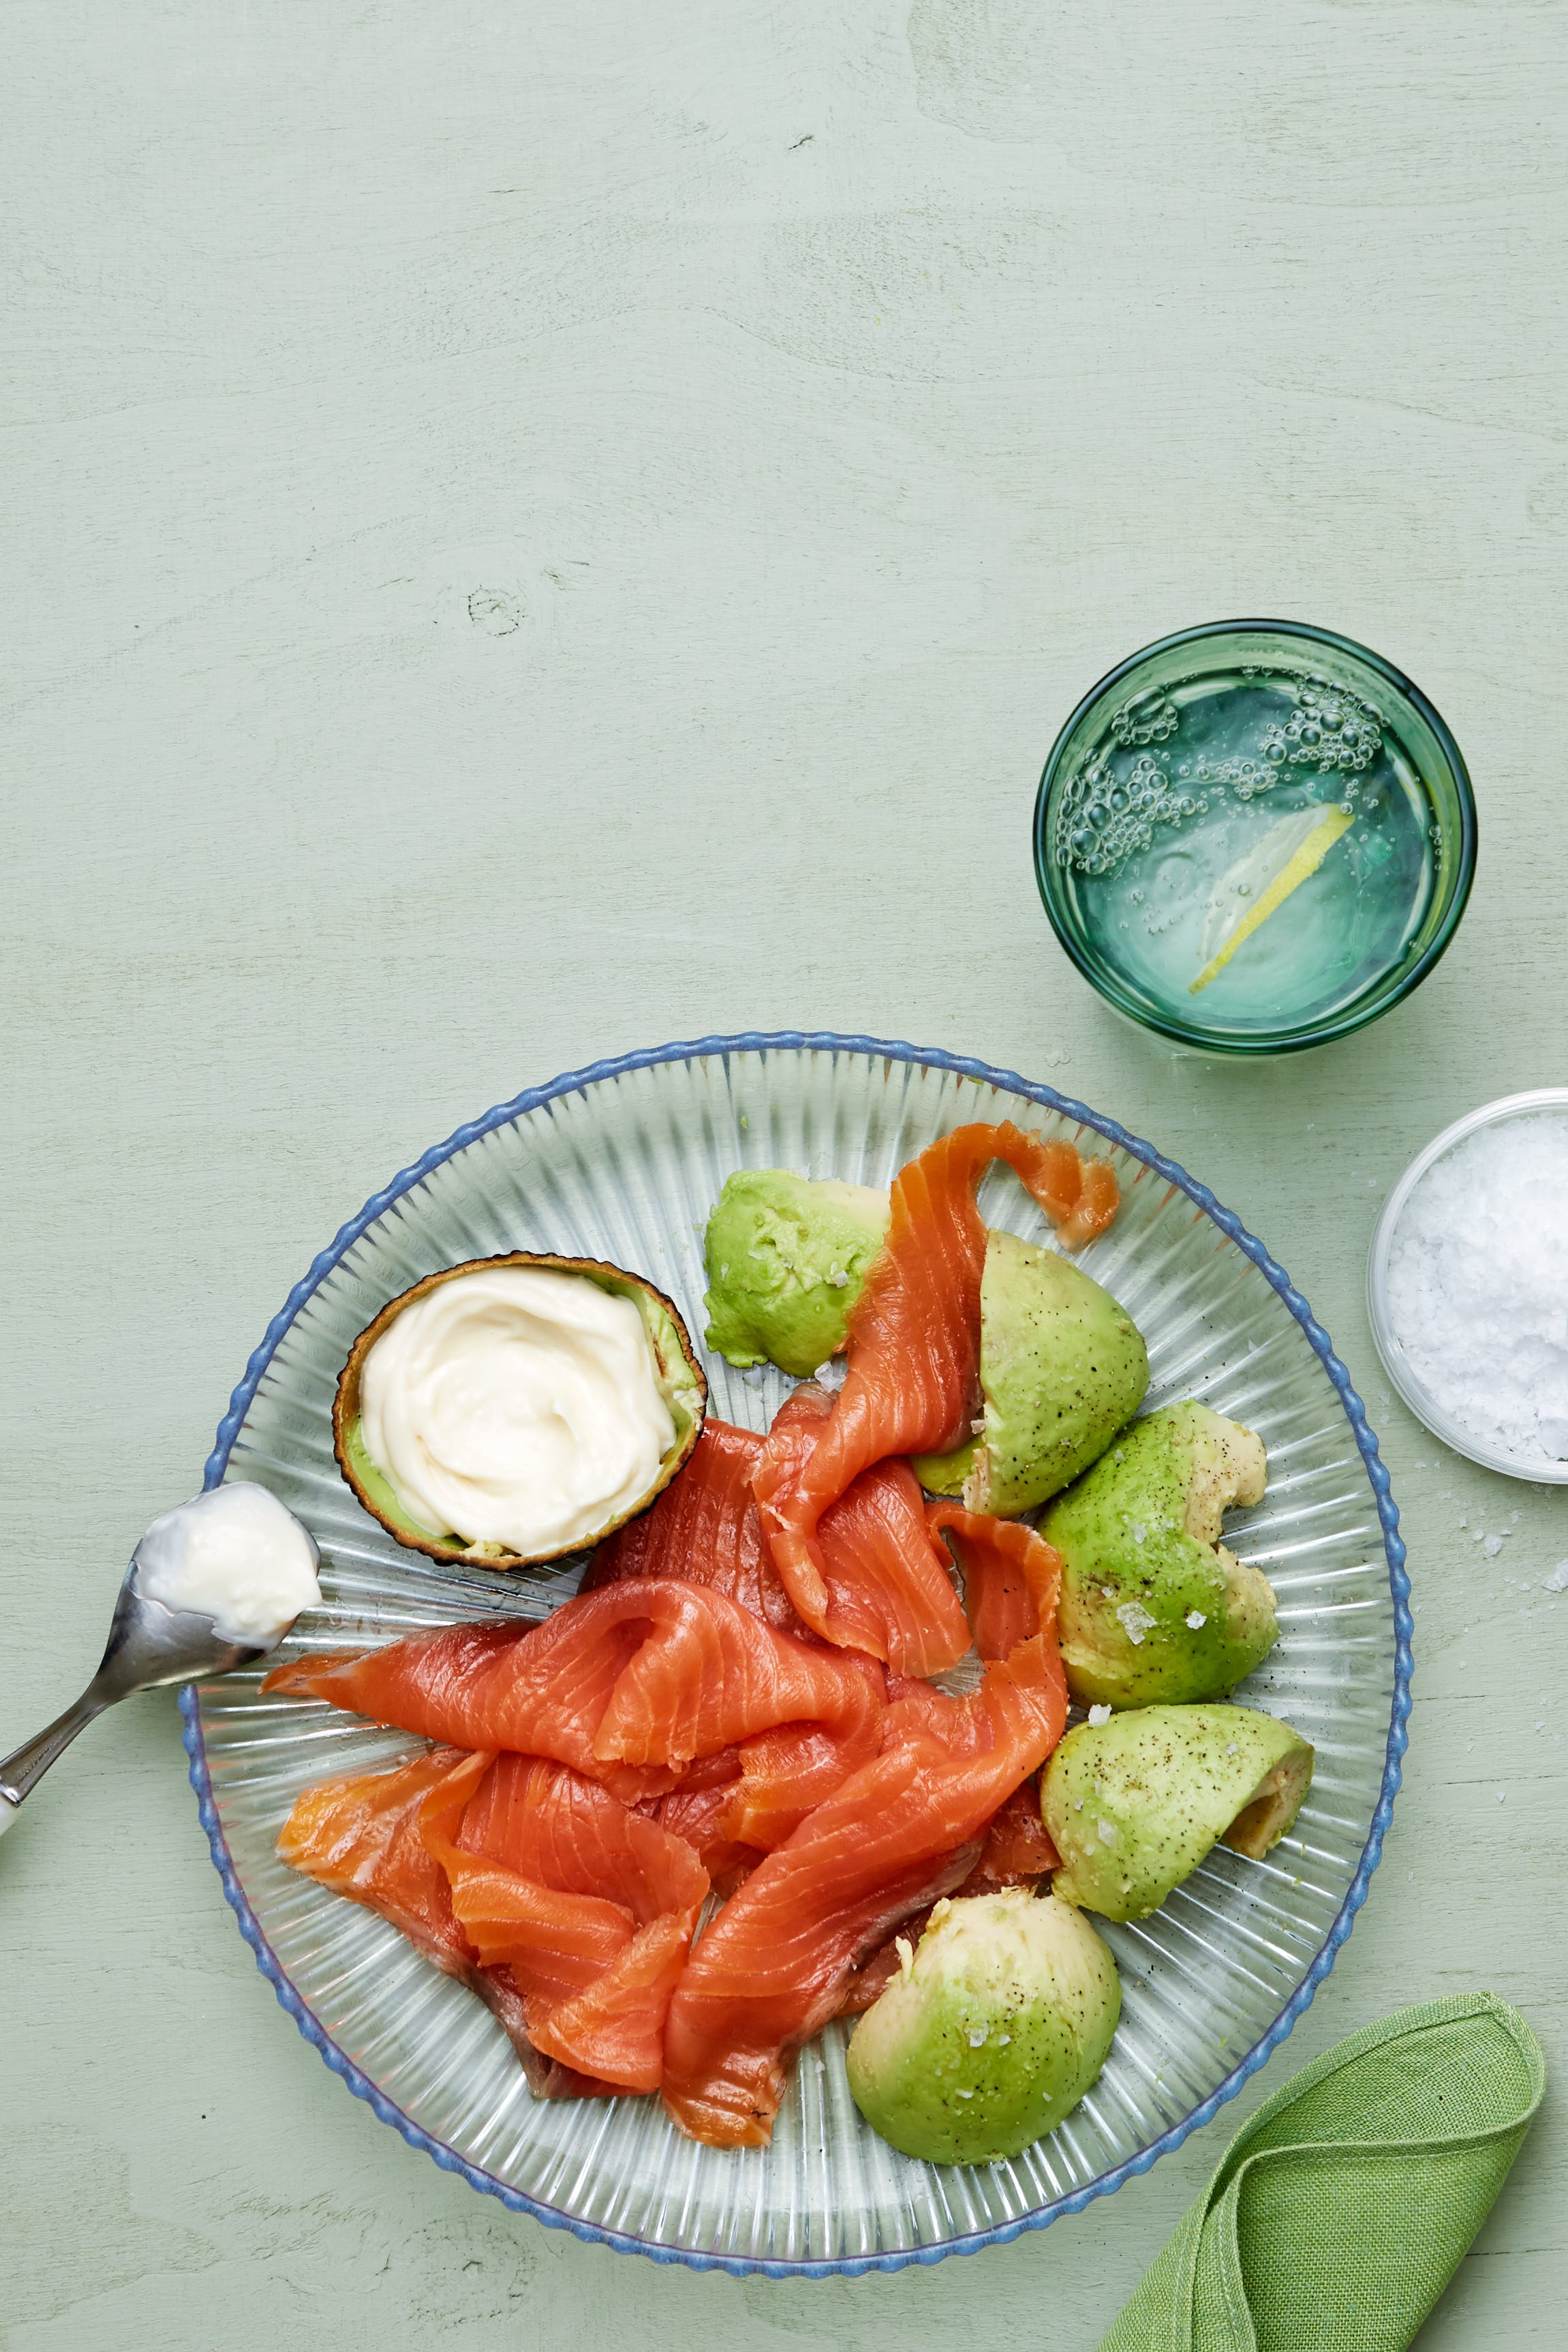 Keto smoked salmon and avocado plate